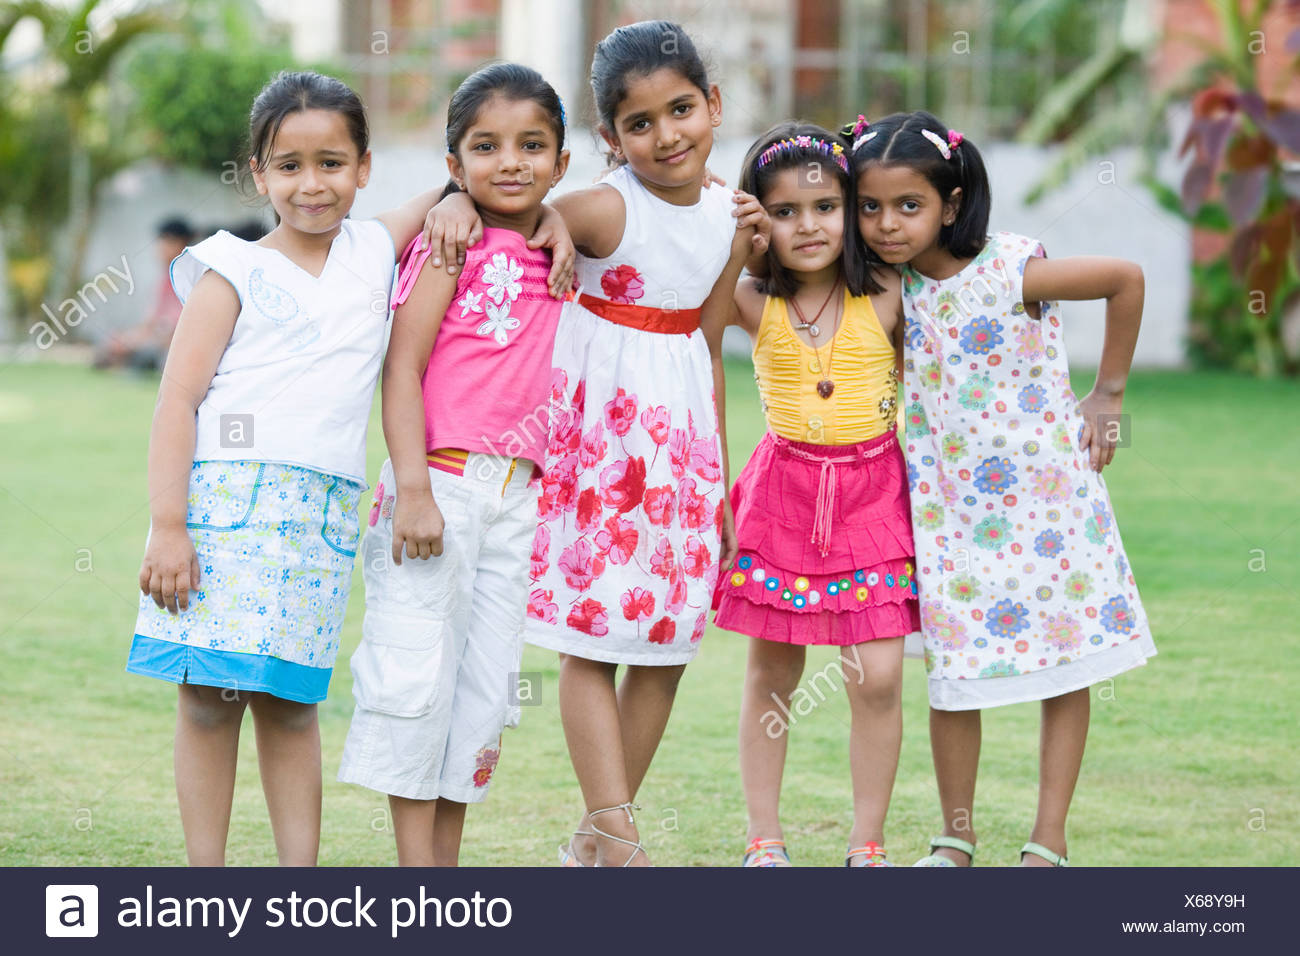 Portrait of five girls standing in a lawn - Stock Image